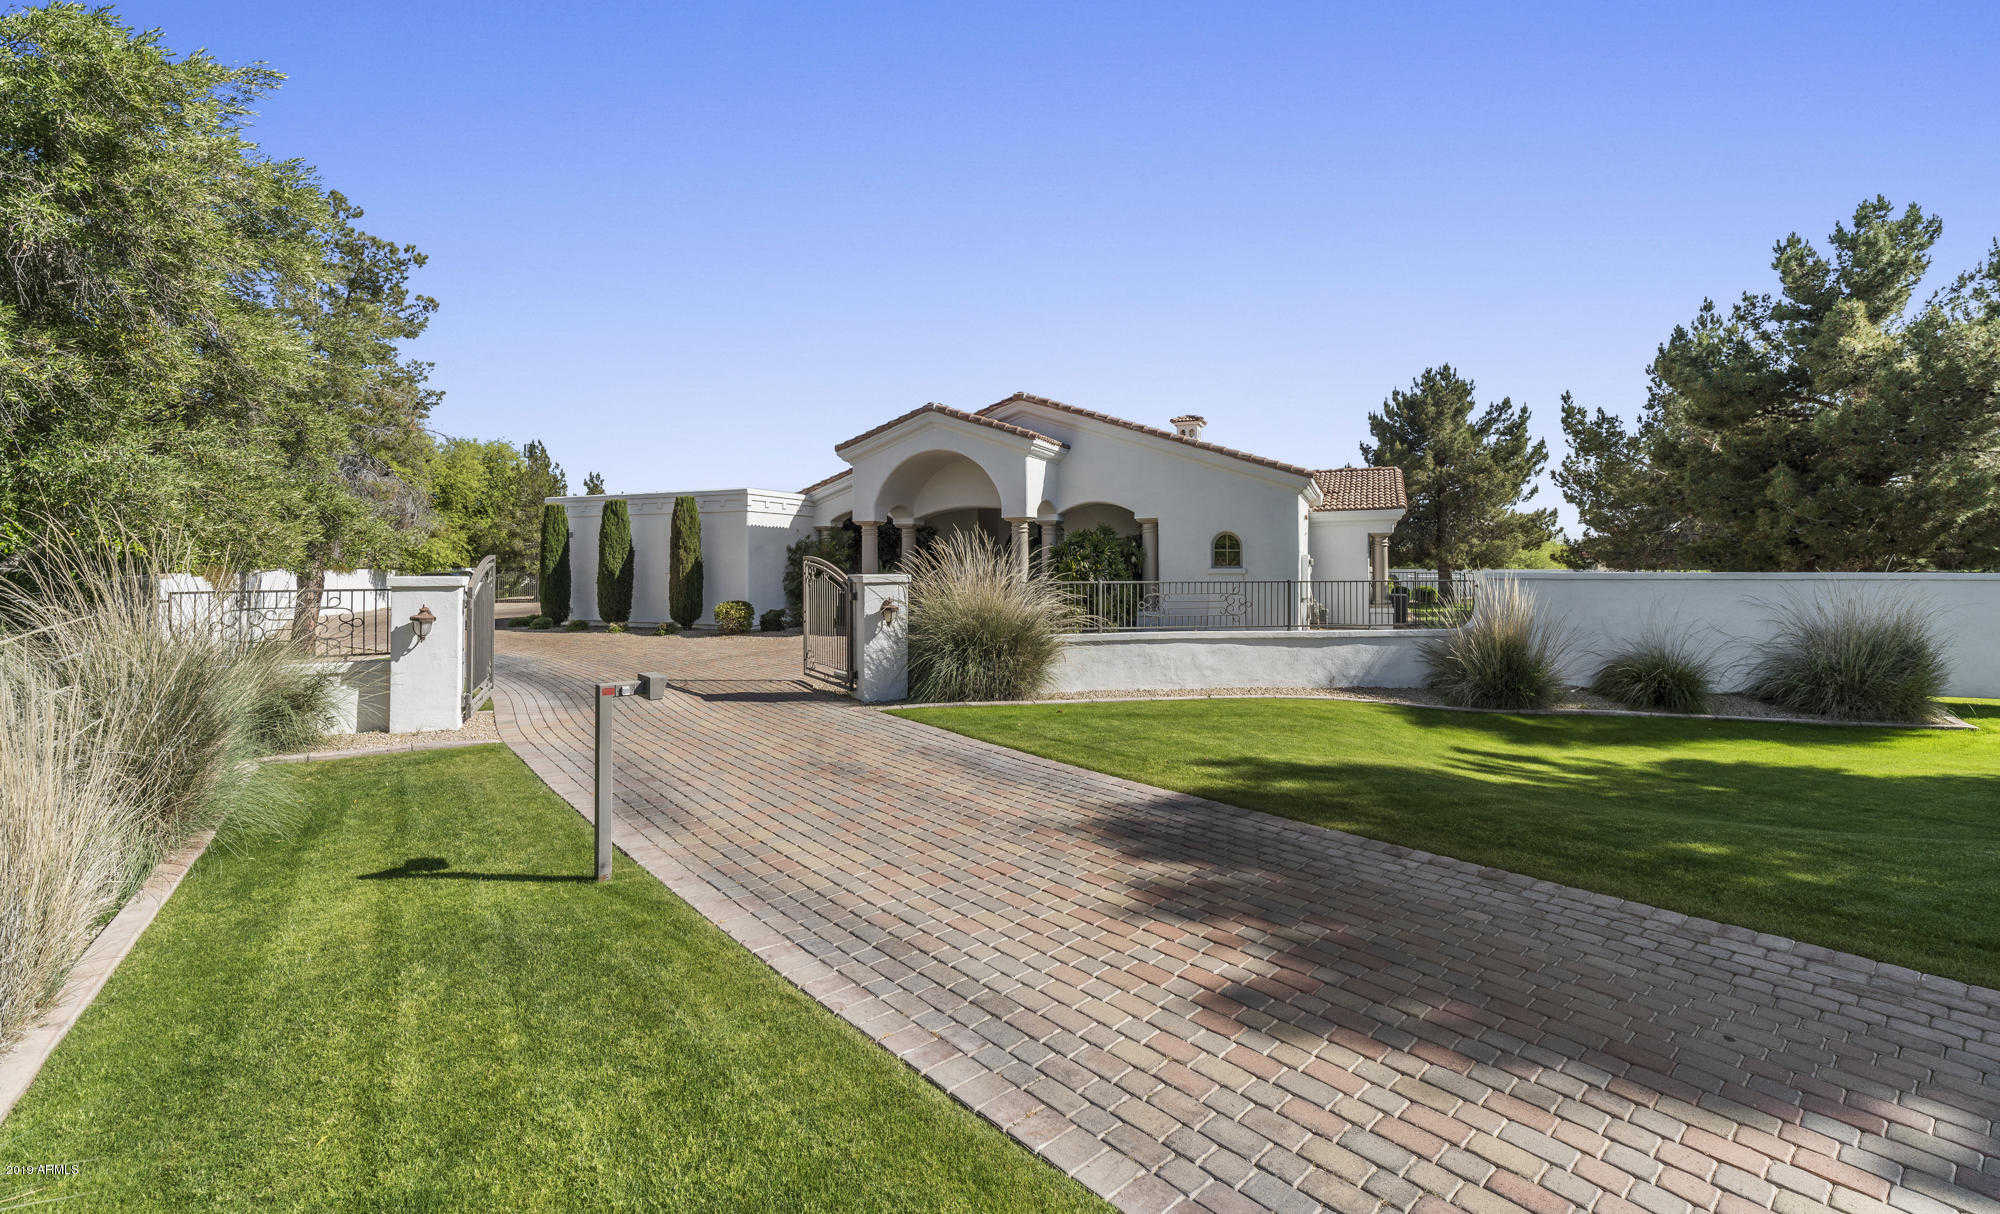 $1,775,000 - 5Br/4Ba - Home for Sale in Paradise Valley Vistas, Paradise Valley